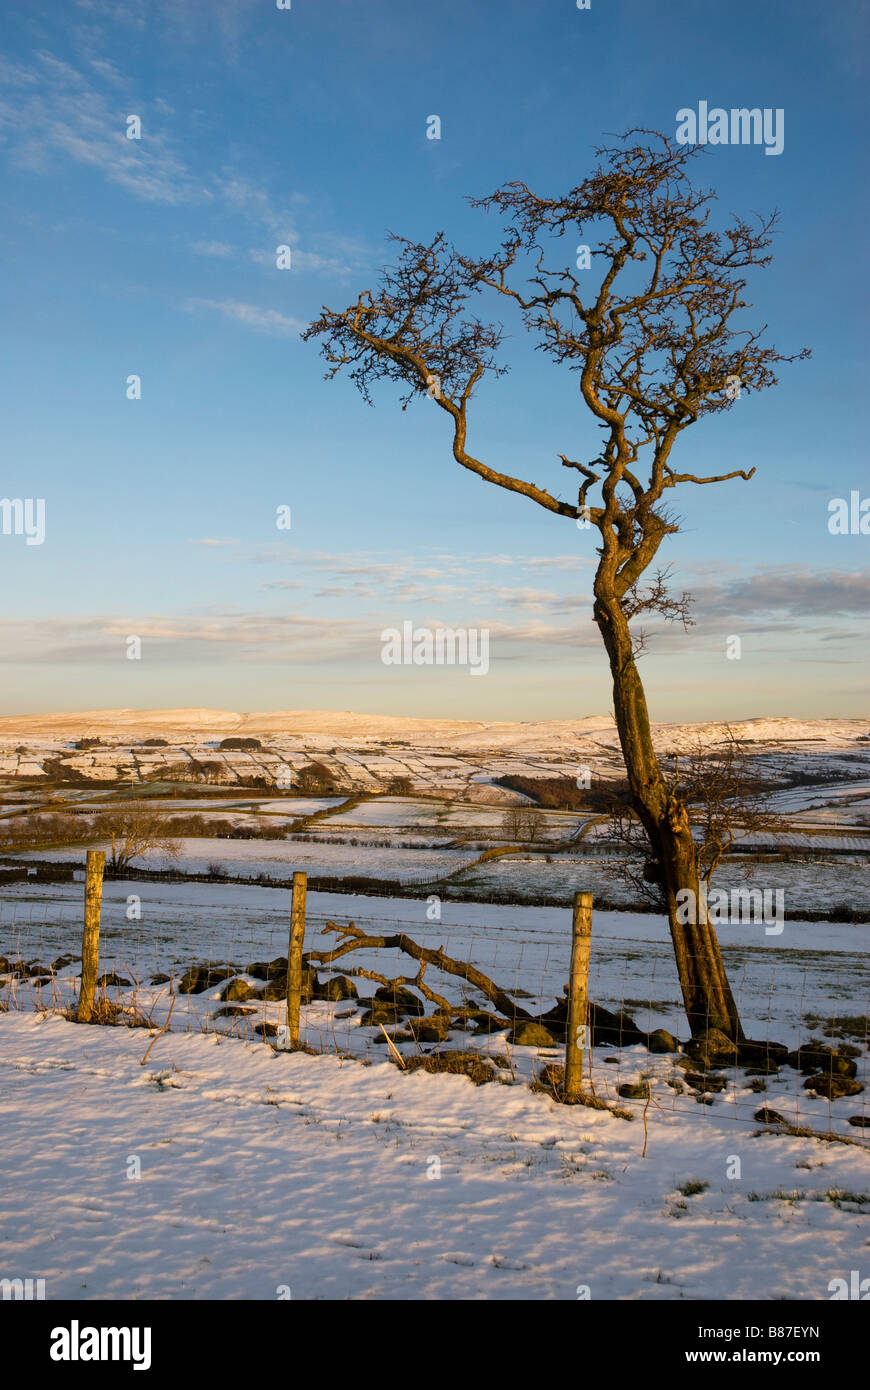 Hawthorn tree in late afternoon sunlight Carnalbanagh, Antrim Plateau. - Stock Image